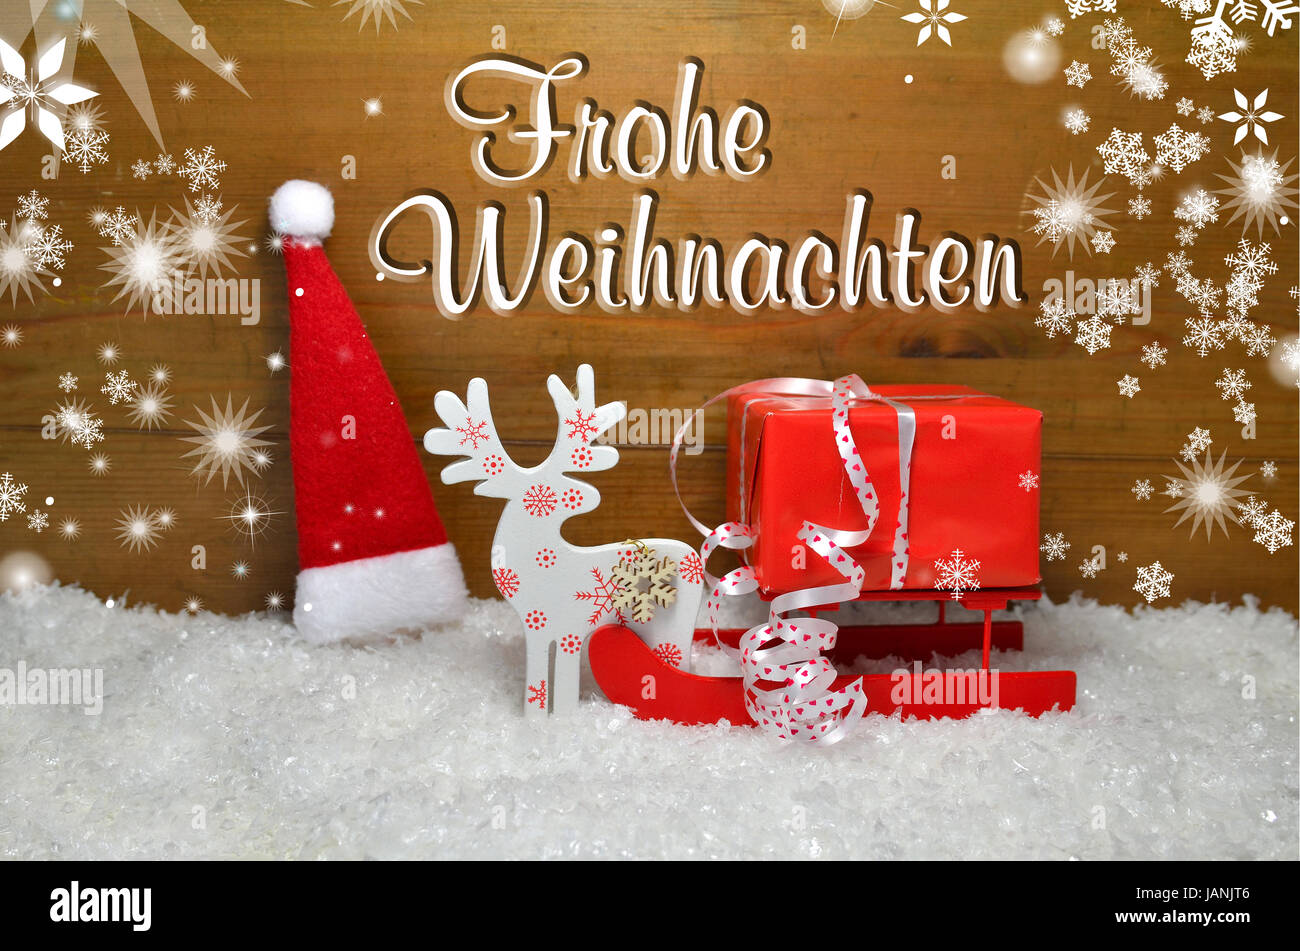 Frohe Weihnachten Frohe Weihnachten Dekoration Advent Stock Photo 144305286 Alamy